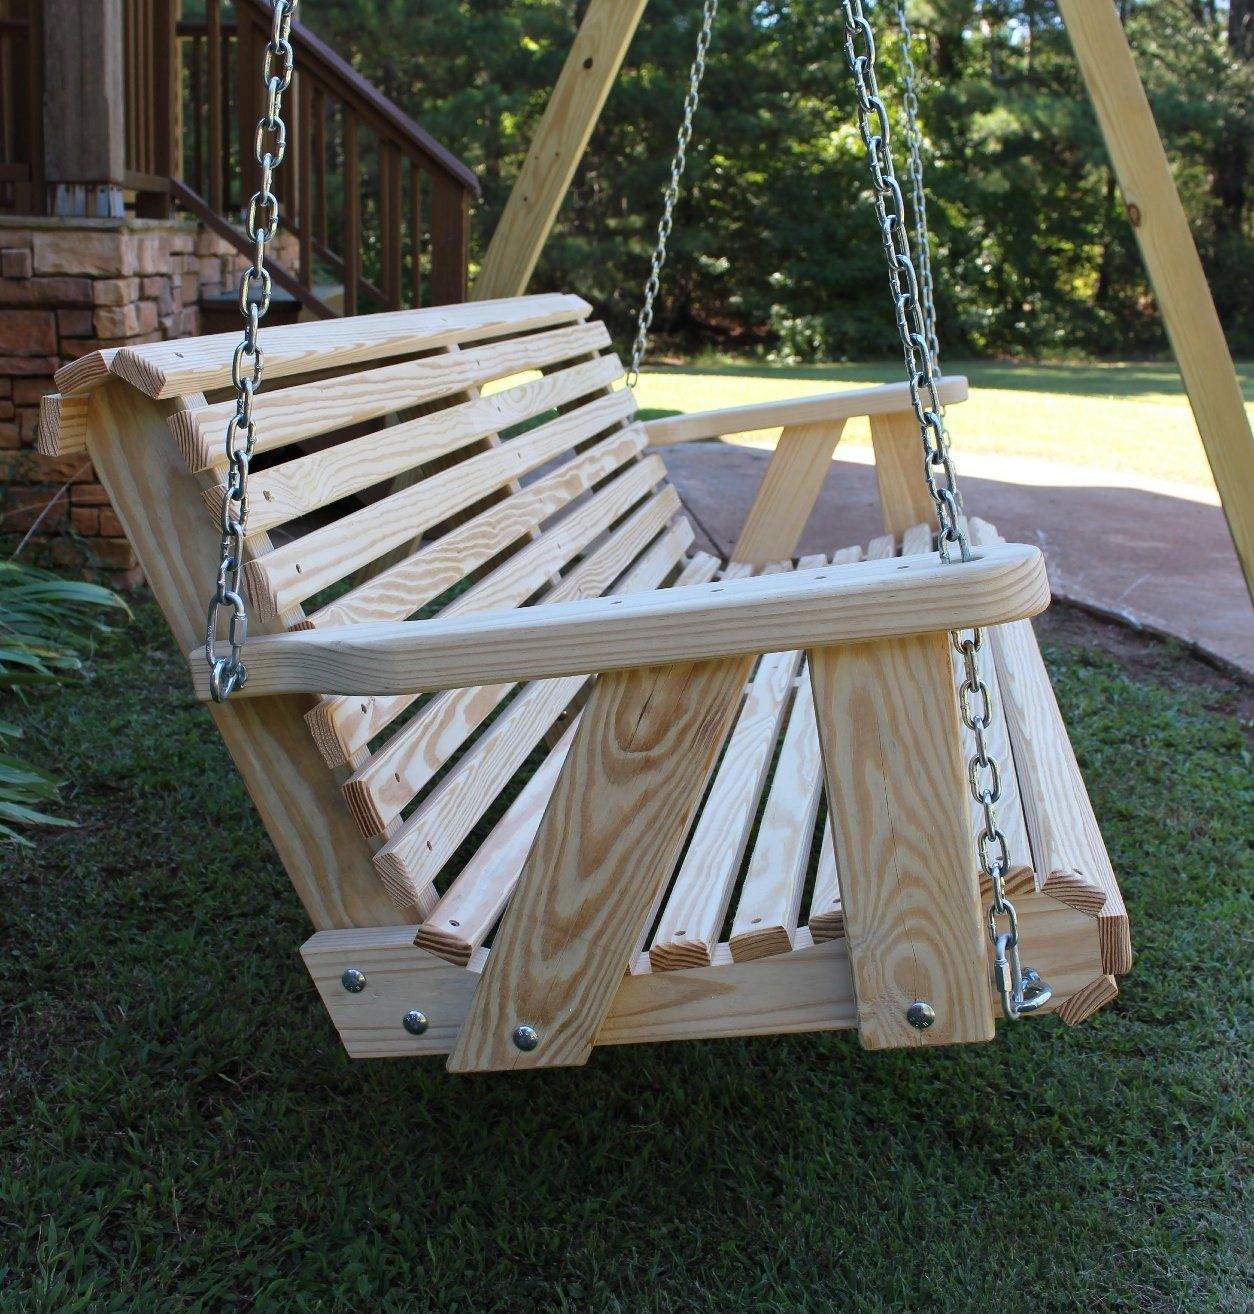 Roll back amish heavy duty lb ft porch swing made in usa